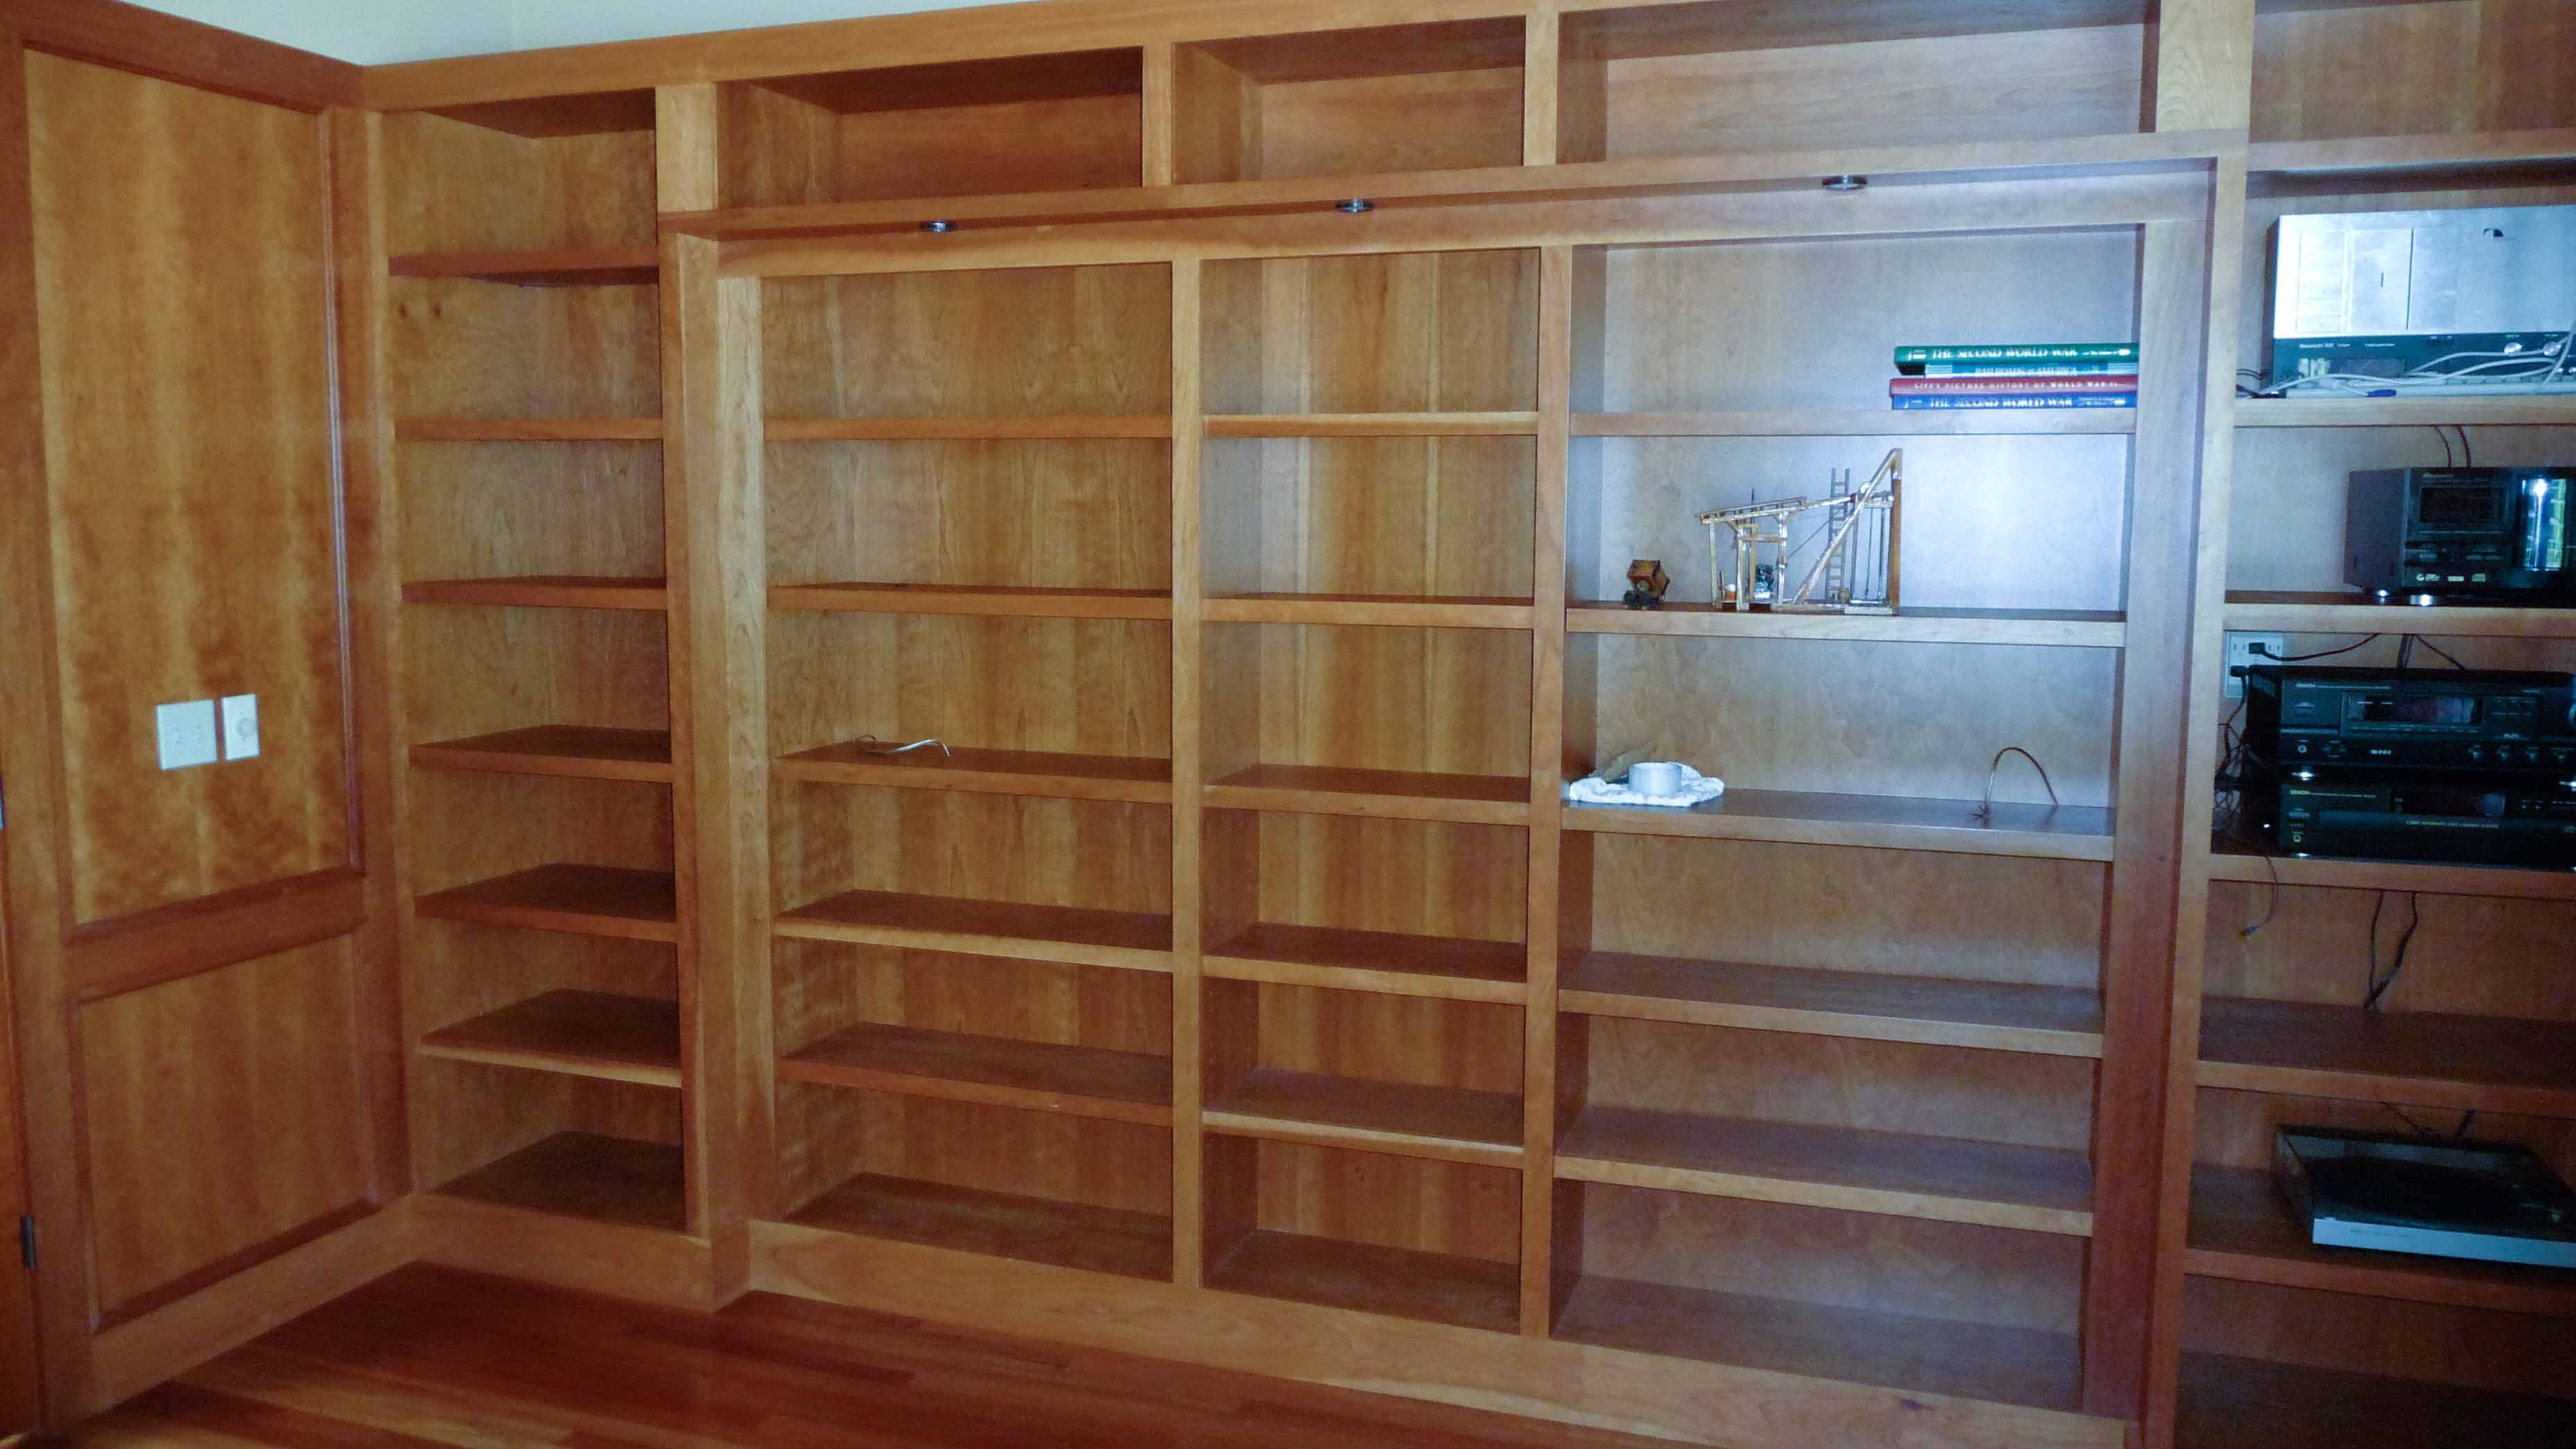 Hidden Pivot Bookcase Installation Thisiscarpentry Regarding Built In Bookshelf Kits (#11 of 15)